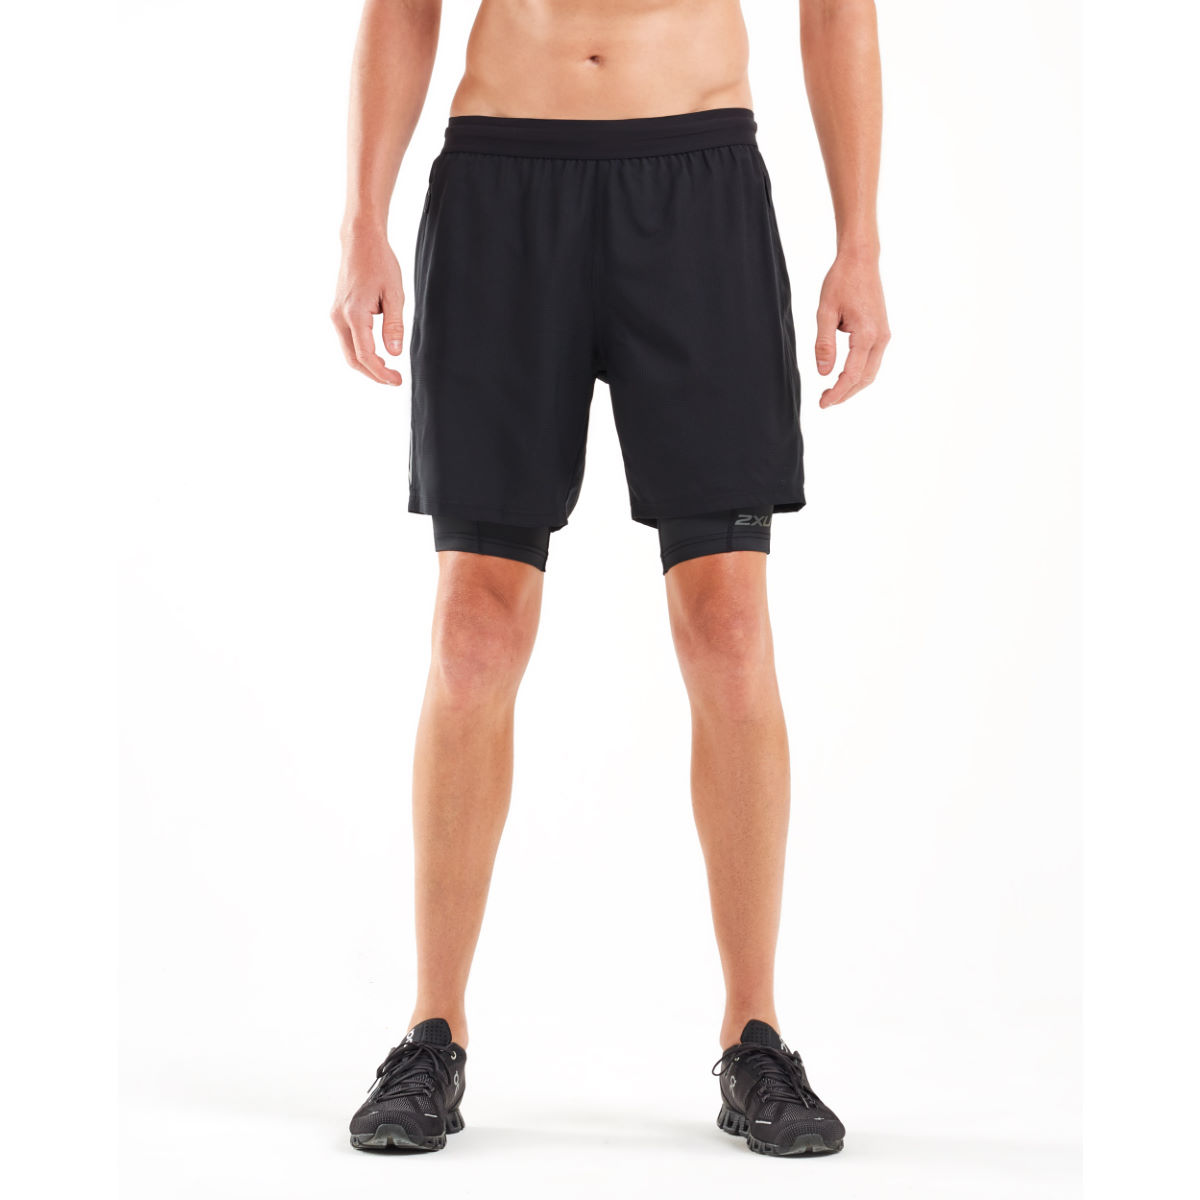 2Xu 2XU XVENT 7 Inch 2 in 1 Compr Short   Compression Shorts